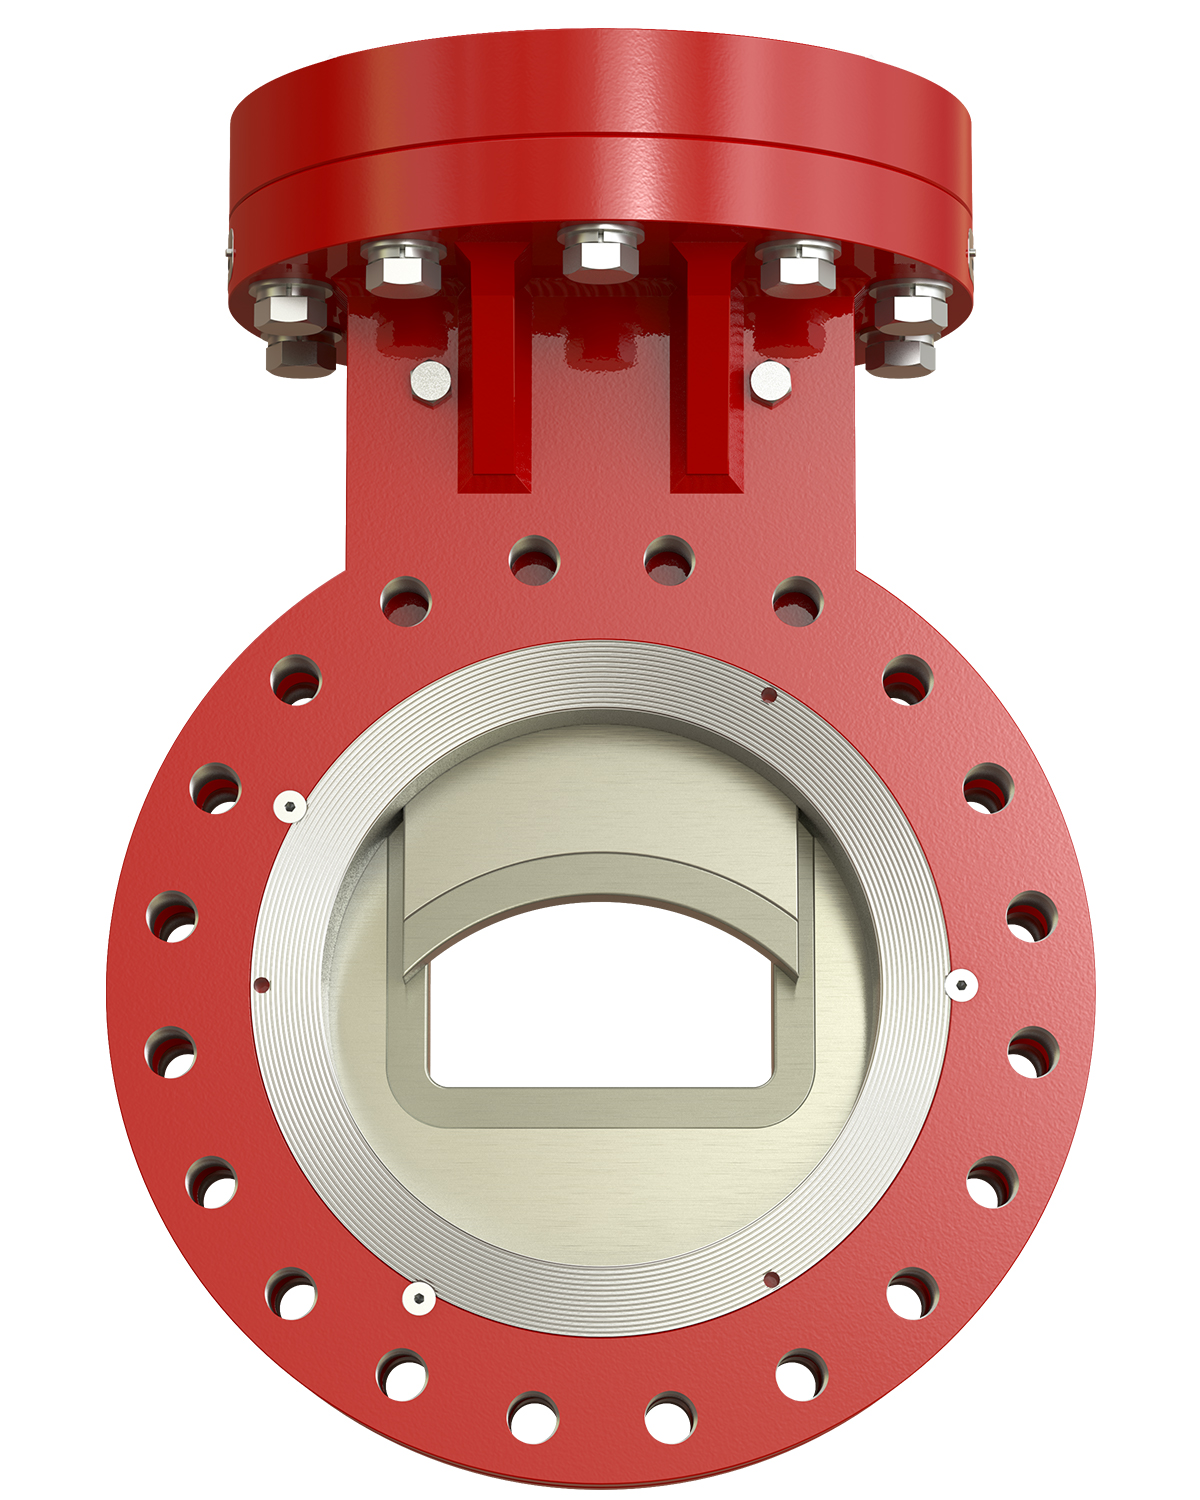 SlurryFlo Control Valve in Modulating Position.